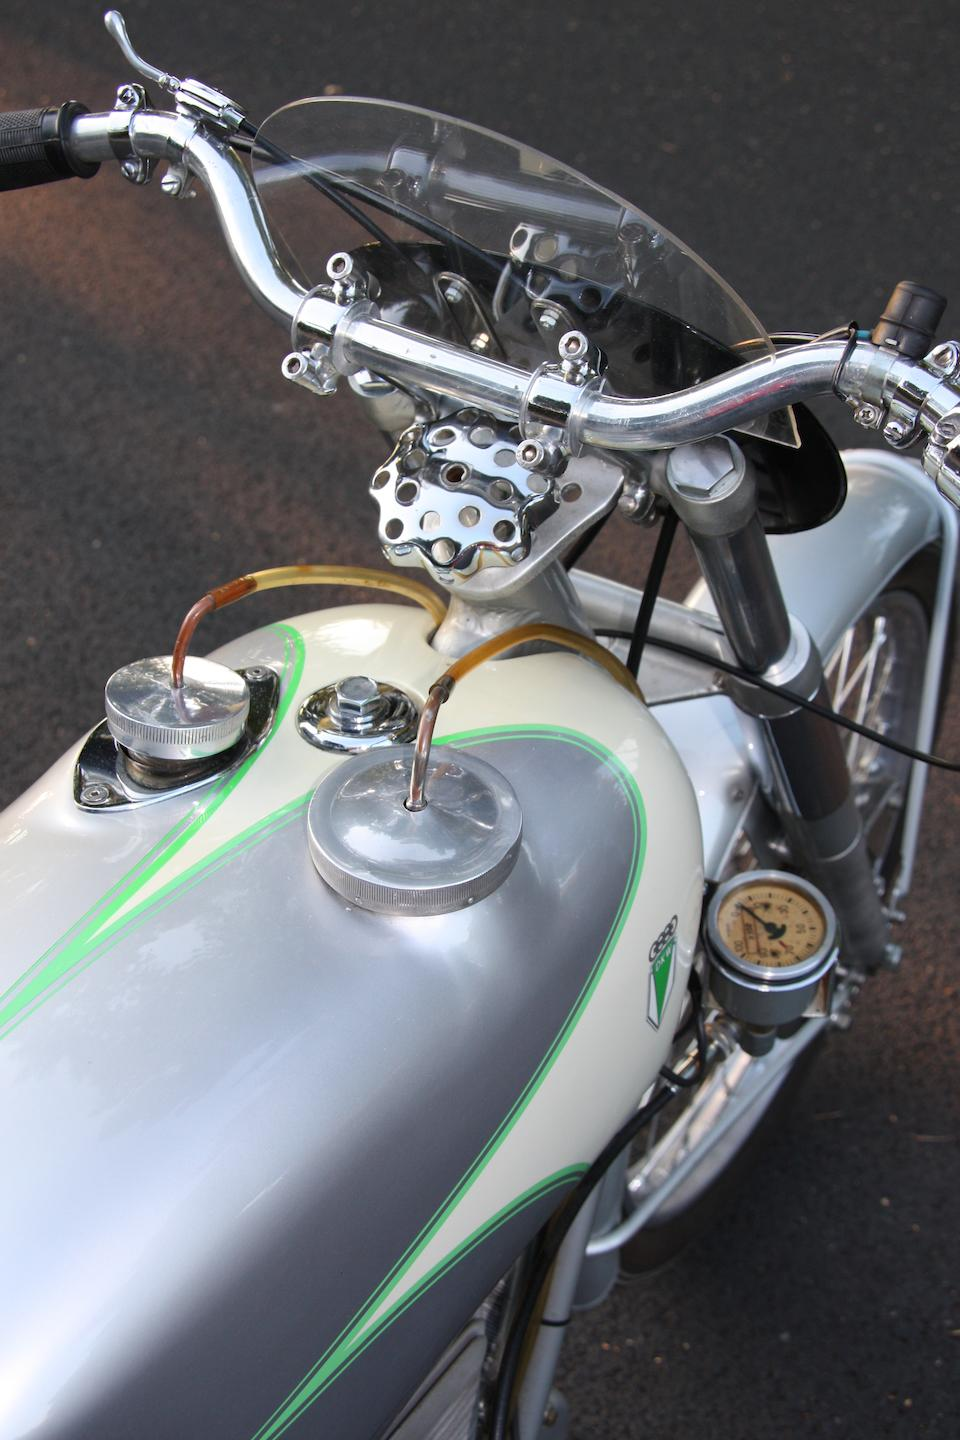 The ex-Kurt Kuhnke,1937 DKW 250cc Supercharged Racing Motorcycle  Frame no. 260 710